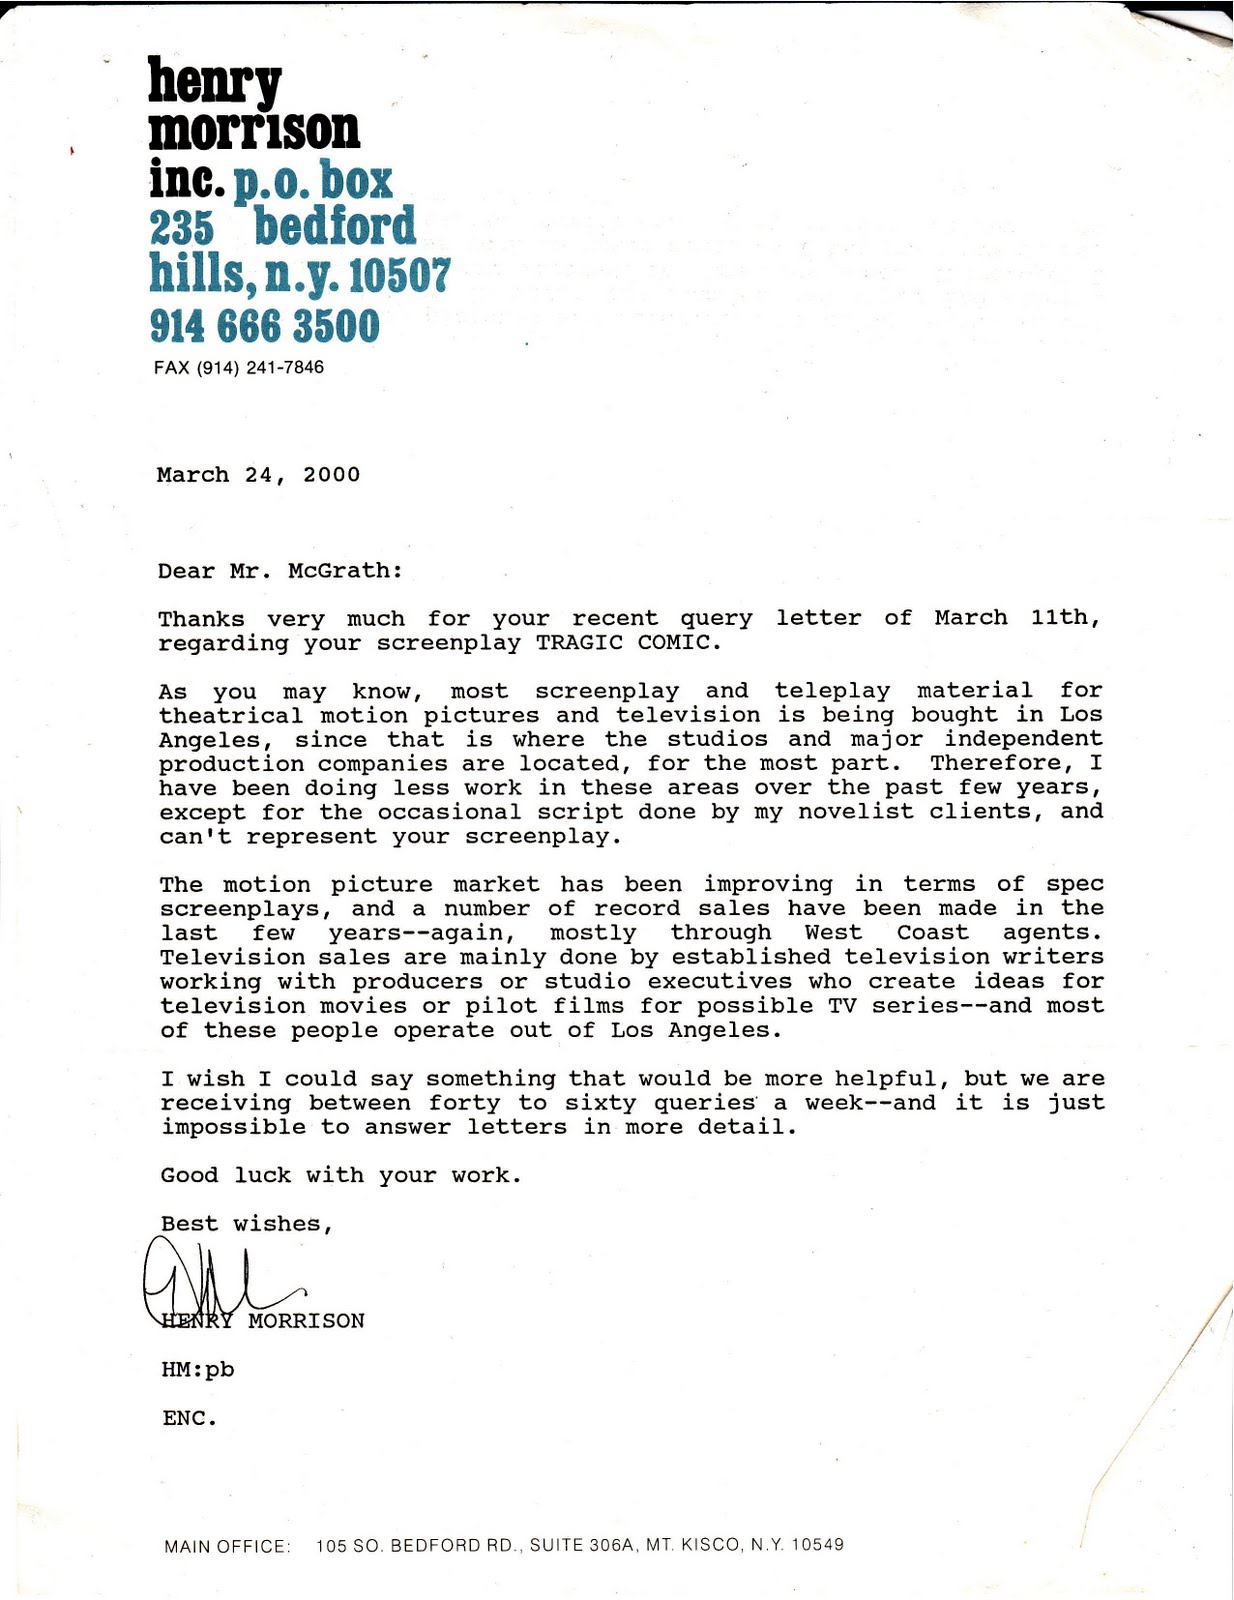 How to address a literary agent in query letter howsto my life scanned rejection letter from henry morrison literary spiritdancerdesigns Images